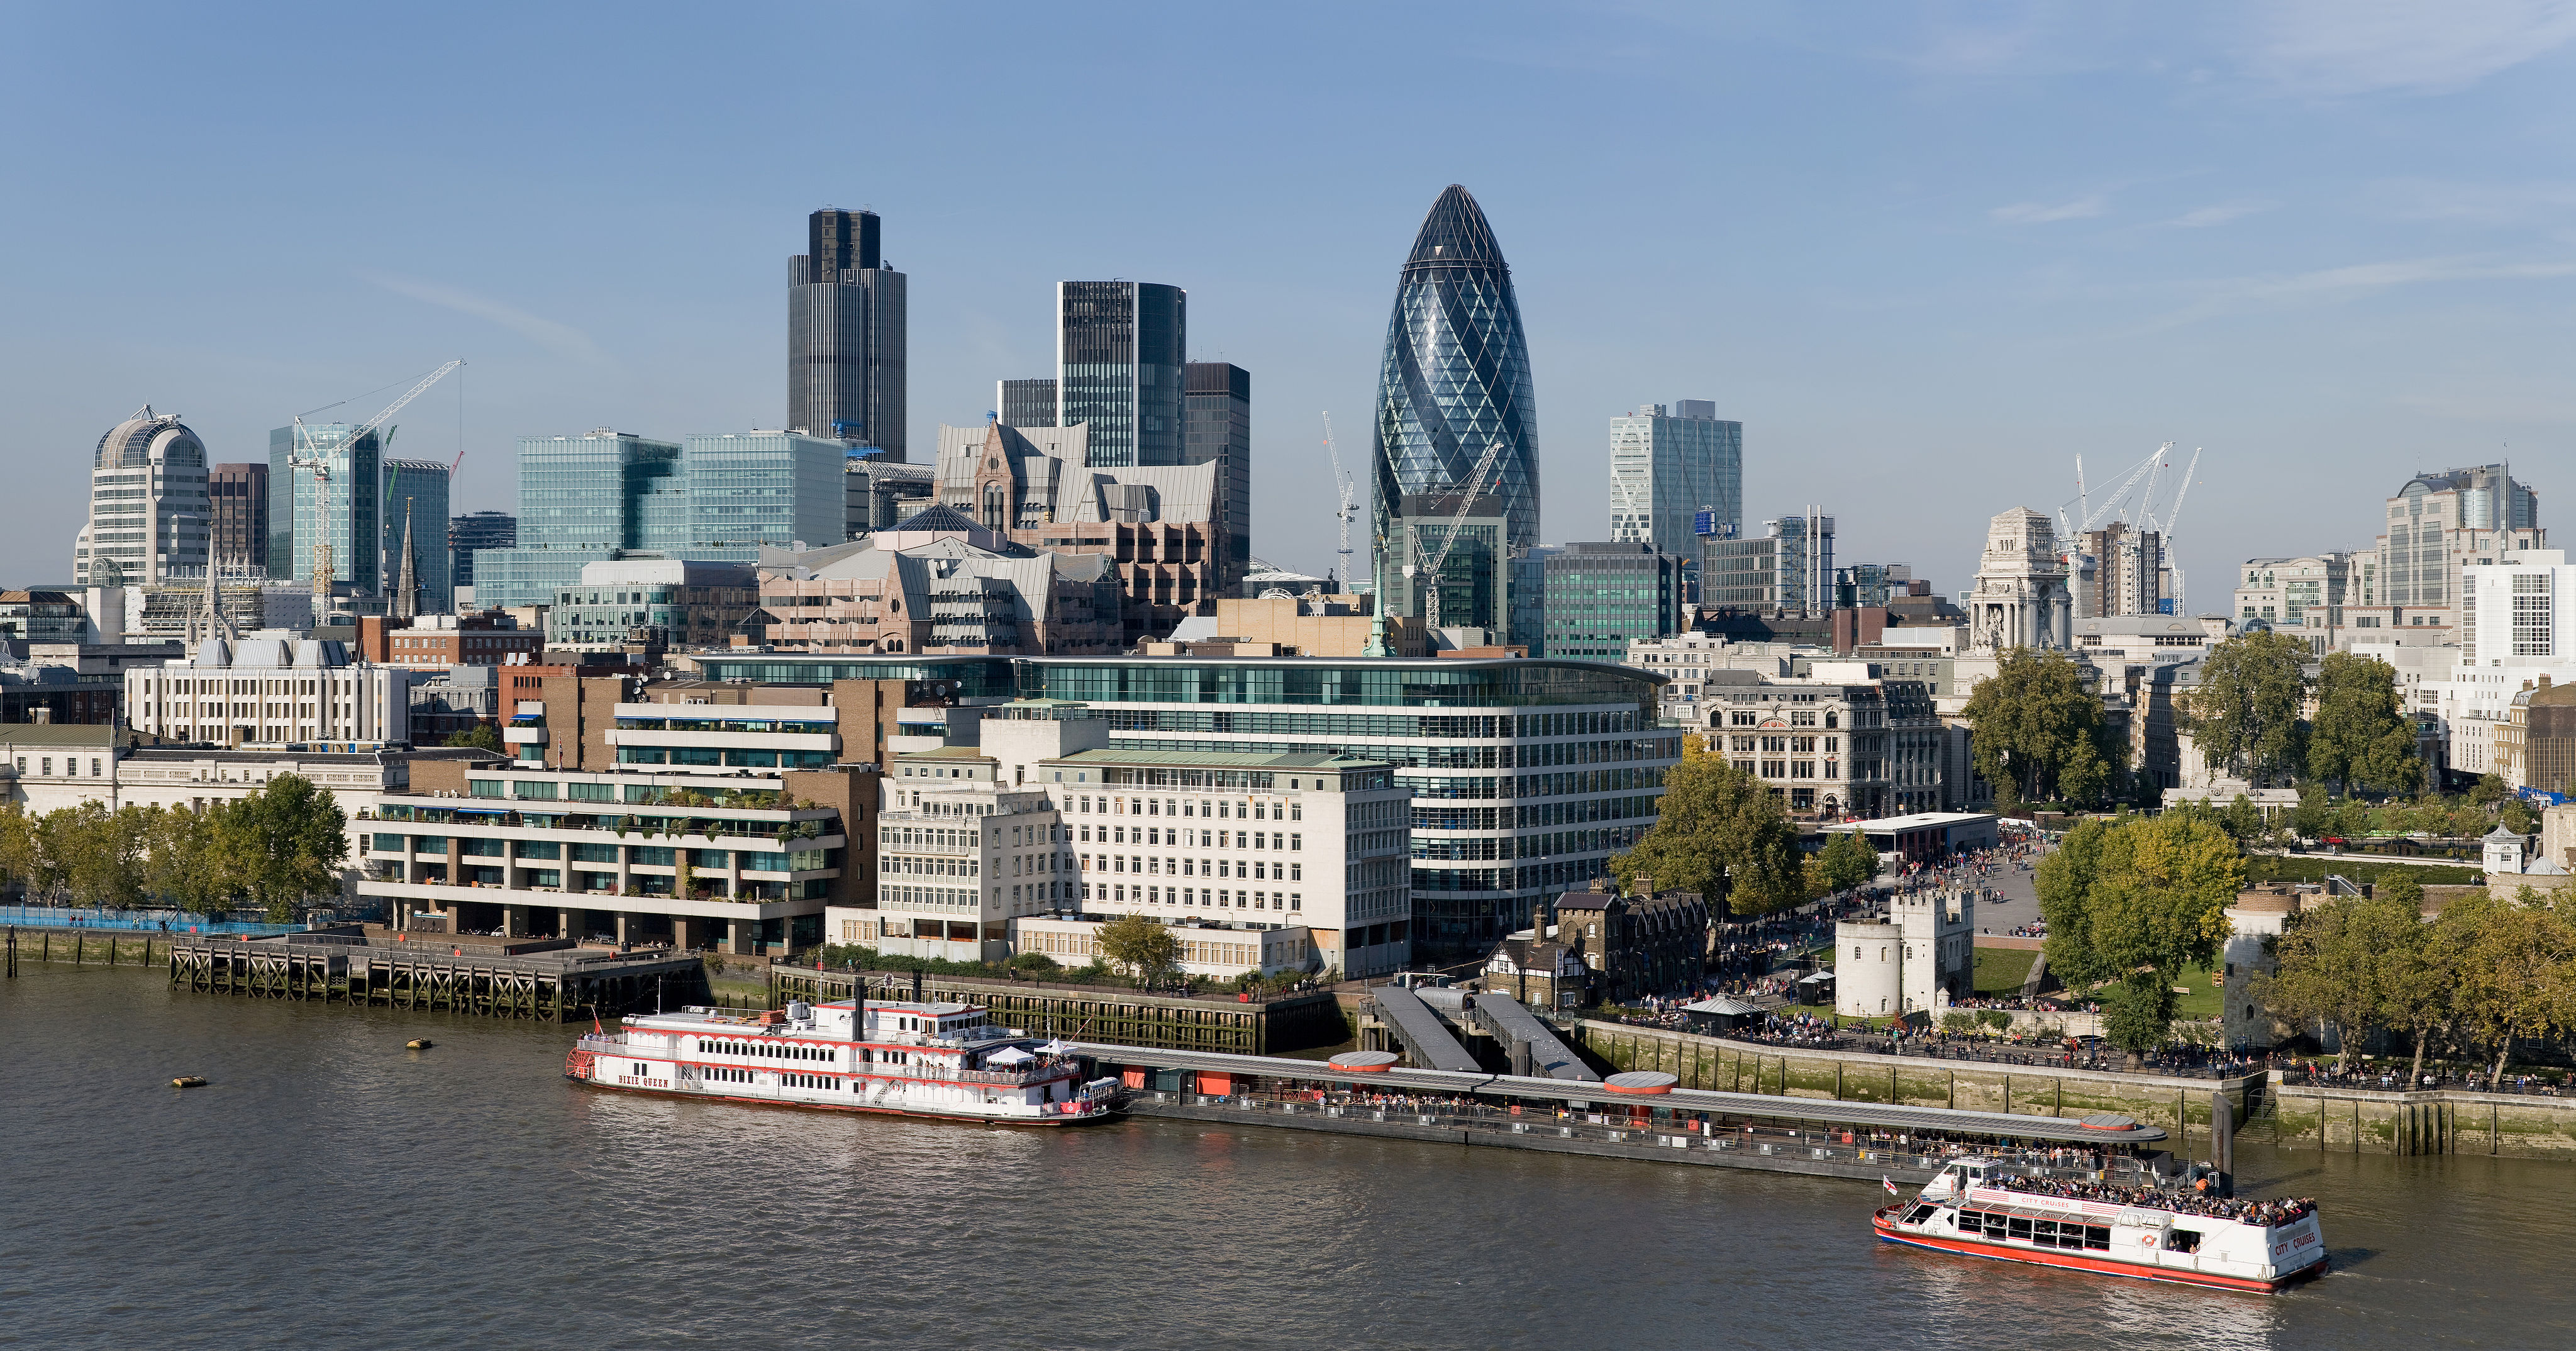 4096px-City_of_London_skyline_from_London_City_Hall_-_Oct_2008.jpg